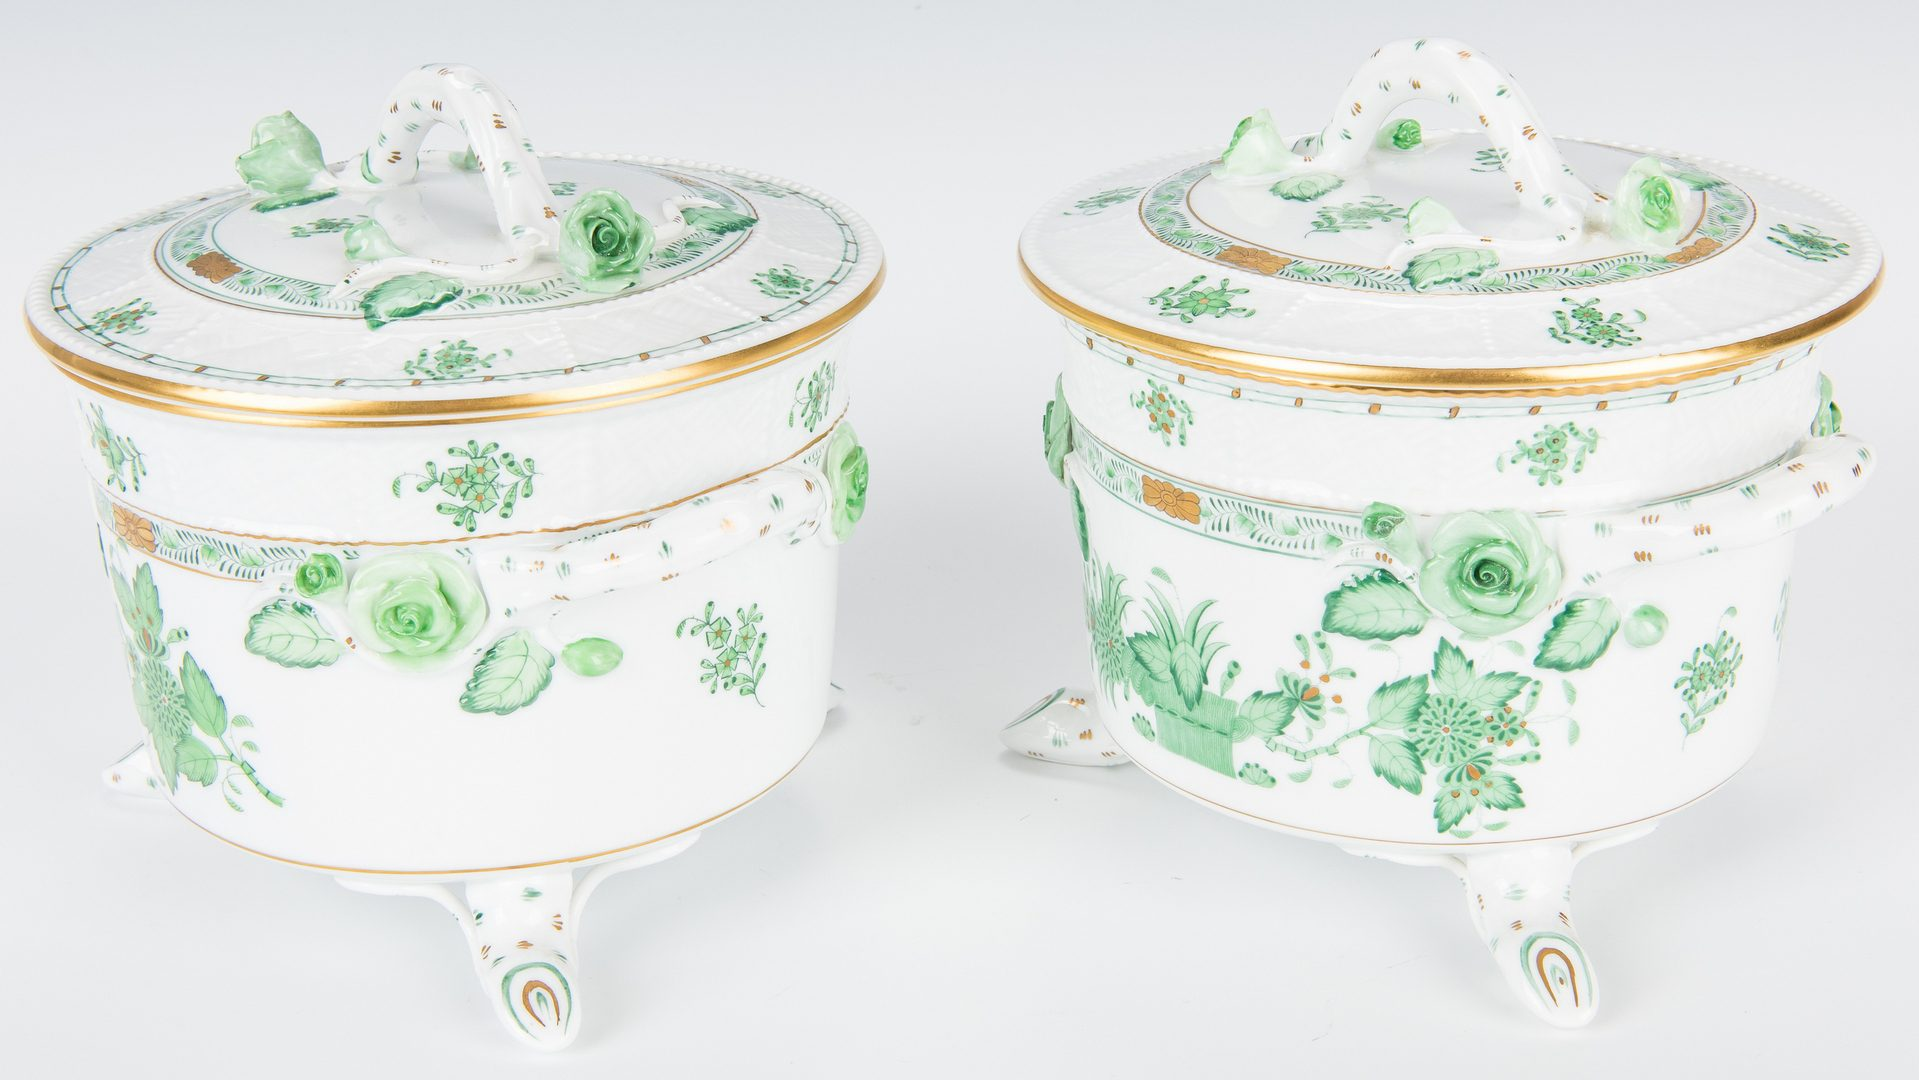 Lot 234: Herend Porcelain Cachepot & 2 Herend Biscuit Jars